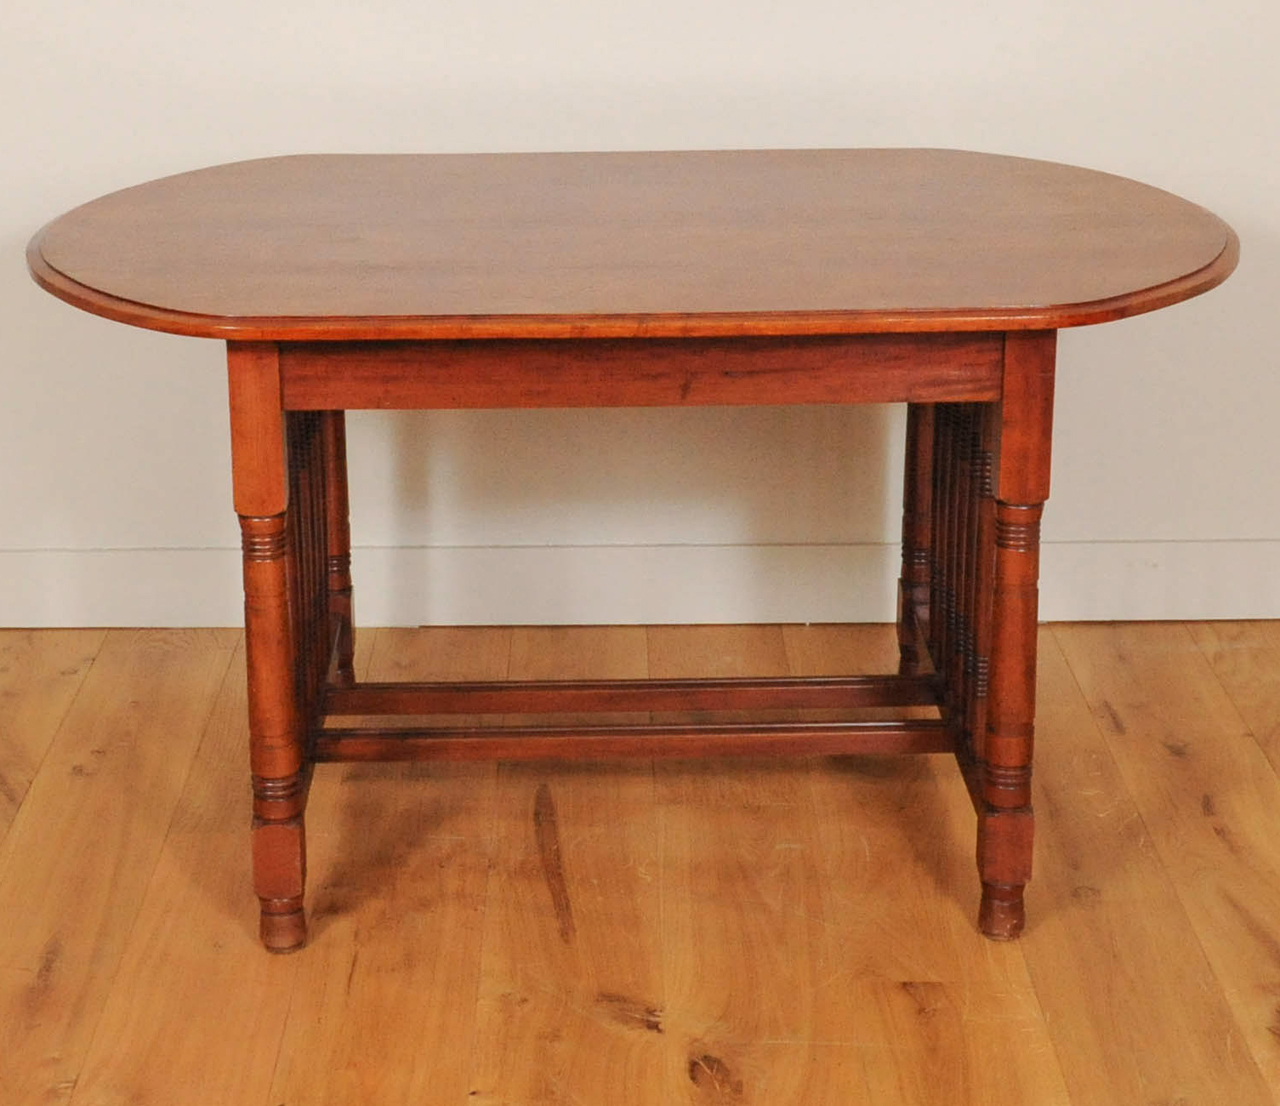 A Dutch Art Deco Mahogany Dining Room Set Of A Table And Four Chairs, Circa  1920